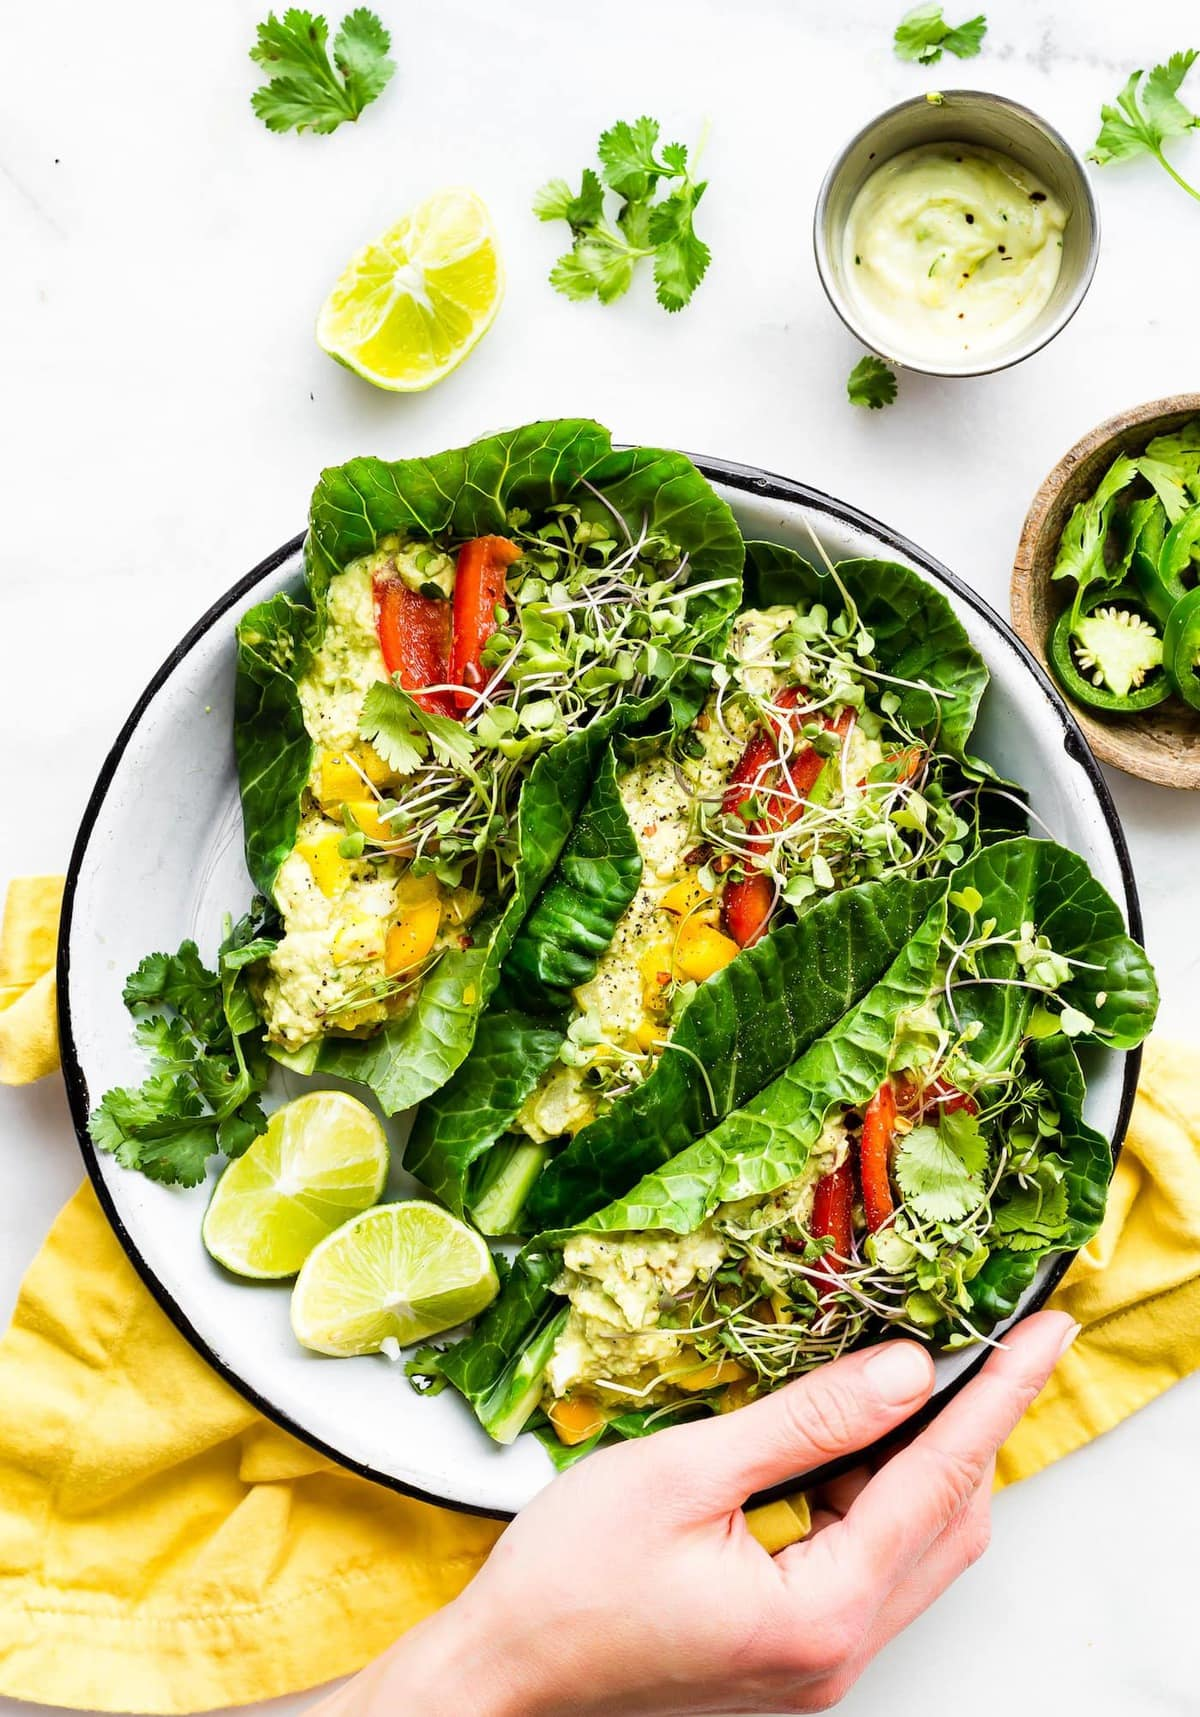 Mexican Avocado Egg Salad Collard Green Wraps